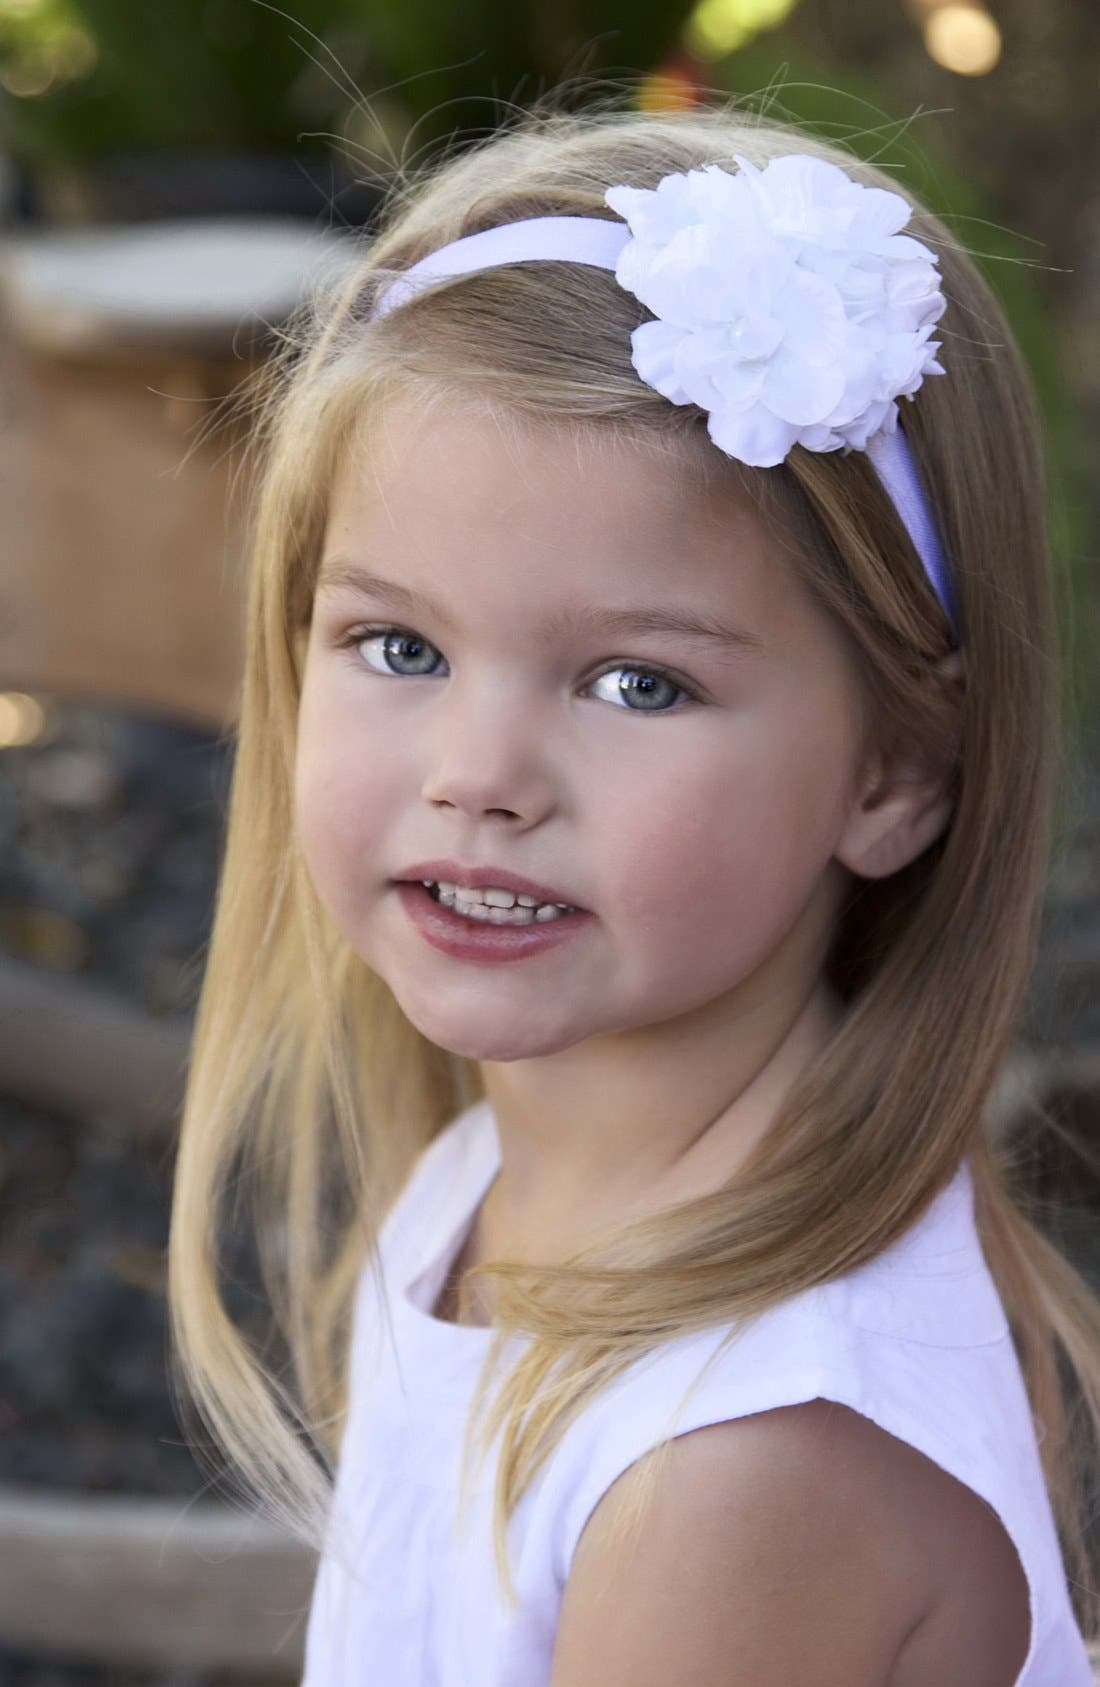 Alternate Image 1 Selected - PLH Bows & Laces Floral Headband (Baby Girls & Toddler Girls)